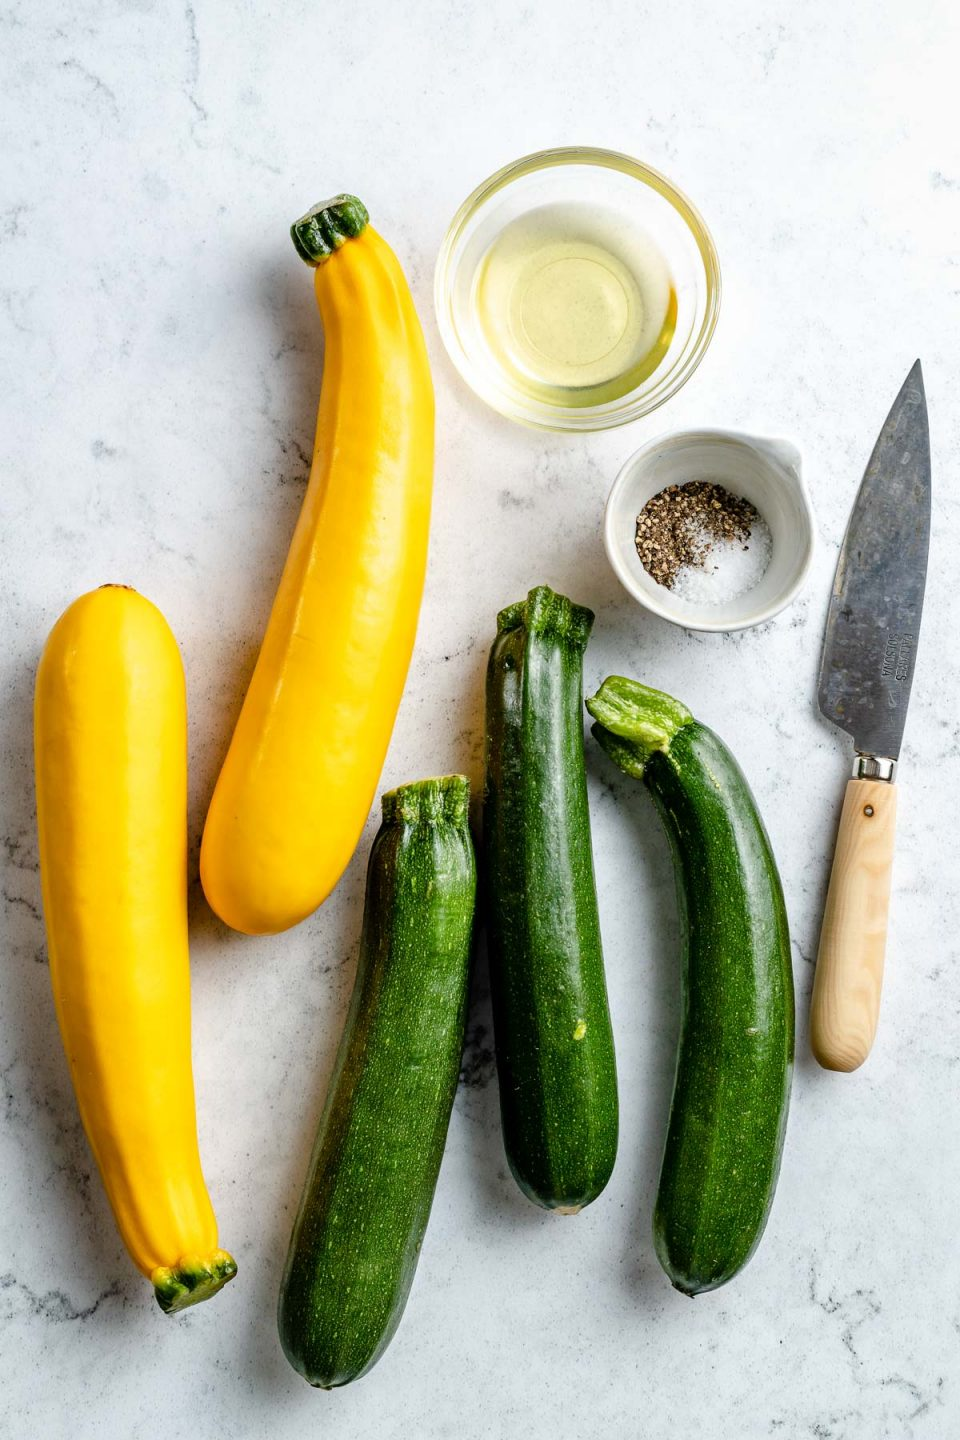 Grilled zucchini and yellow squash ingredients arranged on a white & grey marble surface - zucchini and yellow squash, avocado oil, kosher salt, & ground black pepper. A pairing knife rests on the surface next to the ingredients.